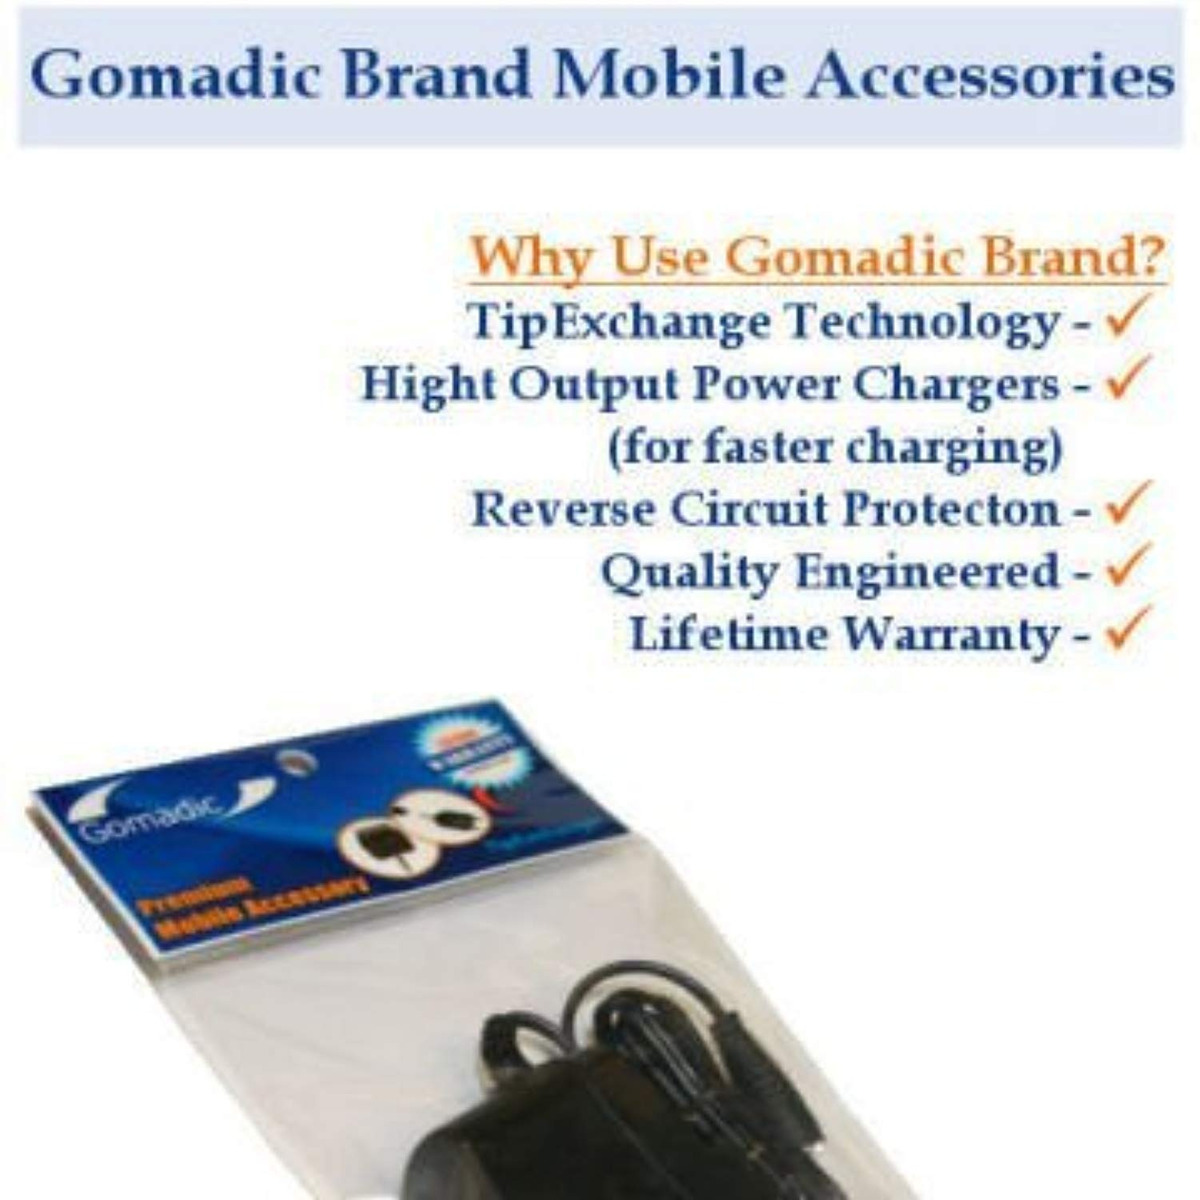 Gomadic Car and Wall Charger Essential Kit suitable for the Sony HDR-AS20 AS20 Includes both AC Wall and DC Car Charging Options with TipExchange